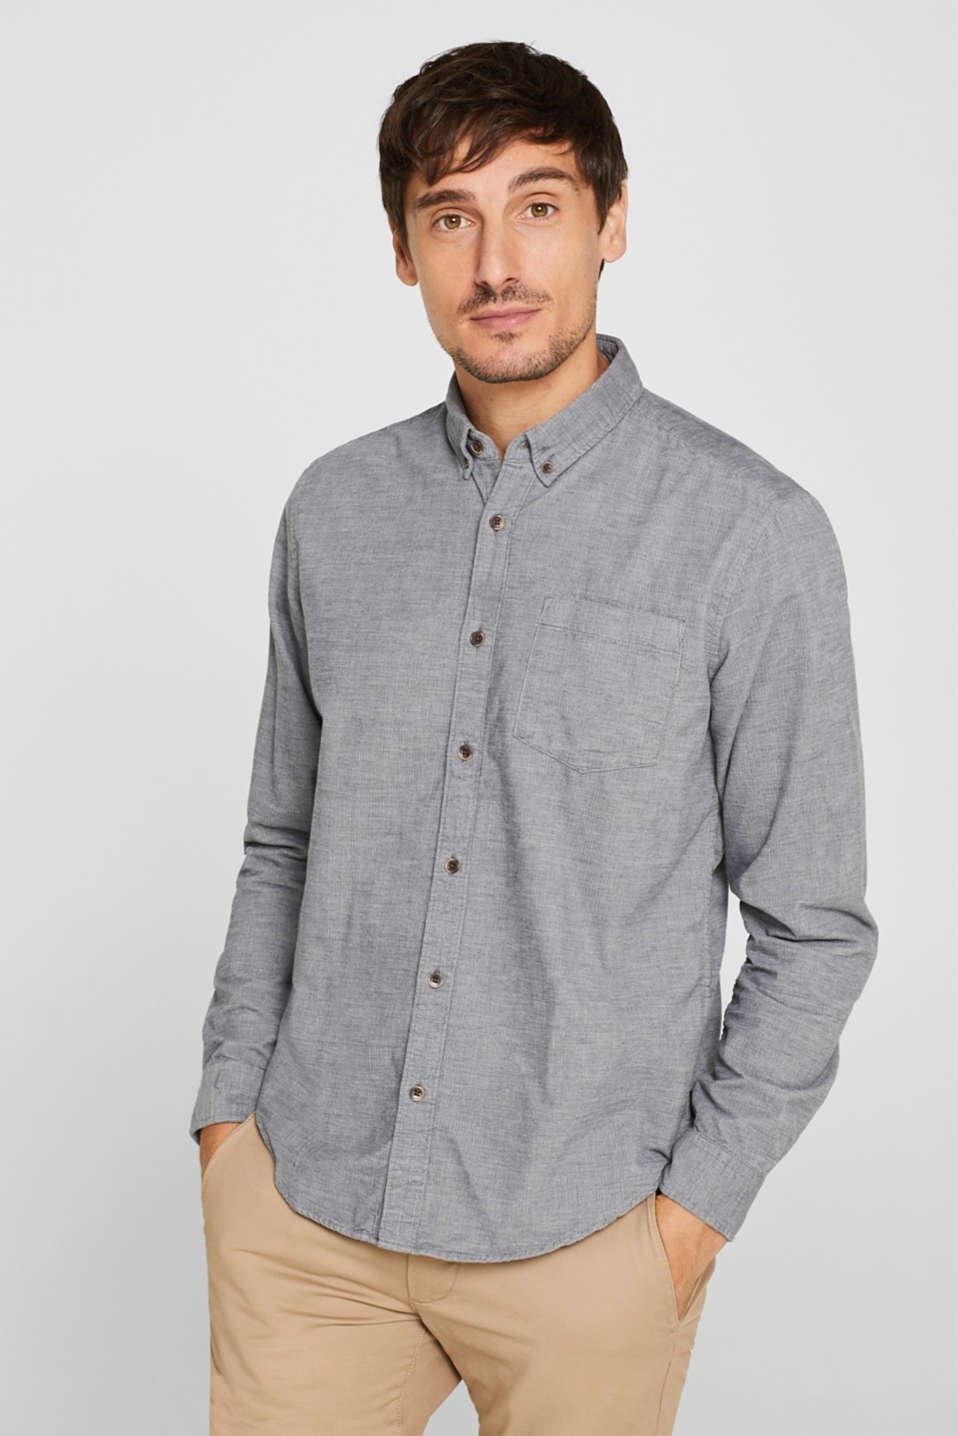 Esprit - Corduroy shirt, 100% cotton